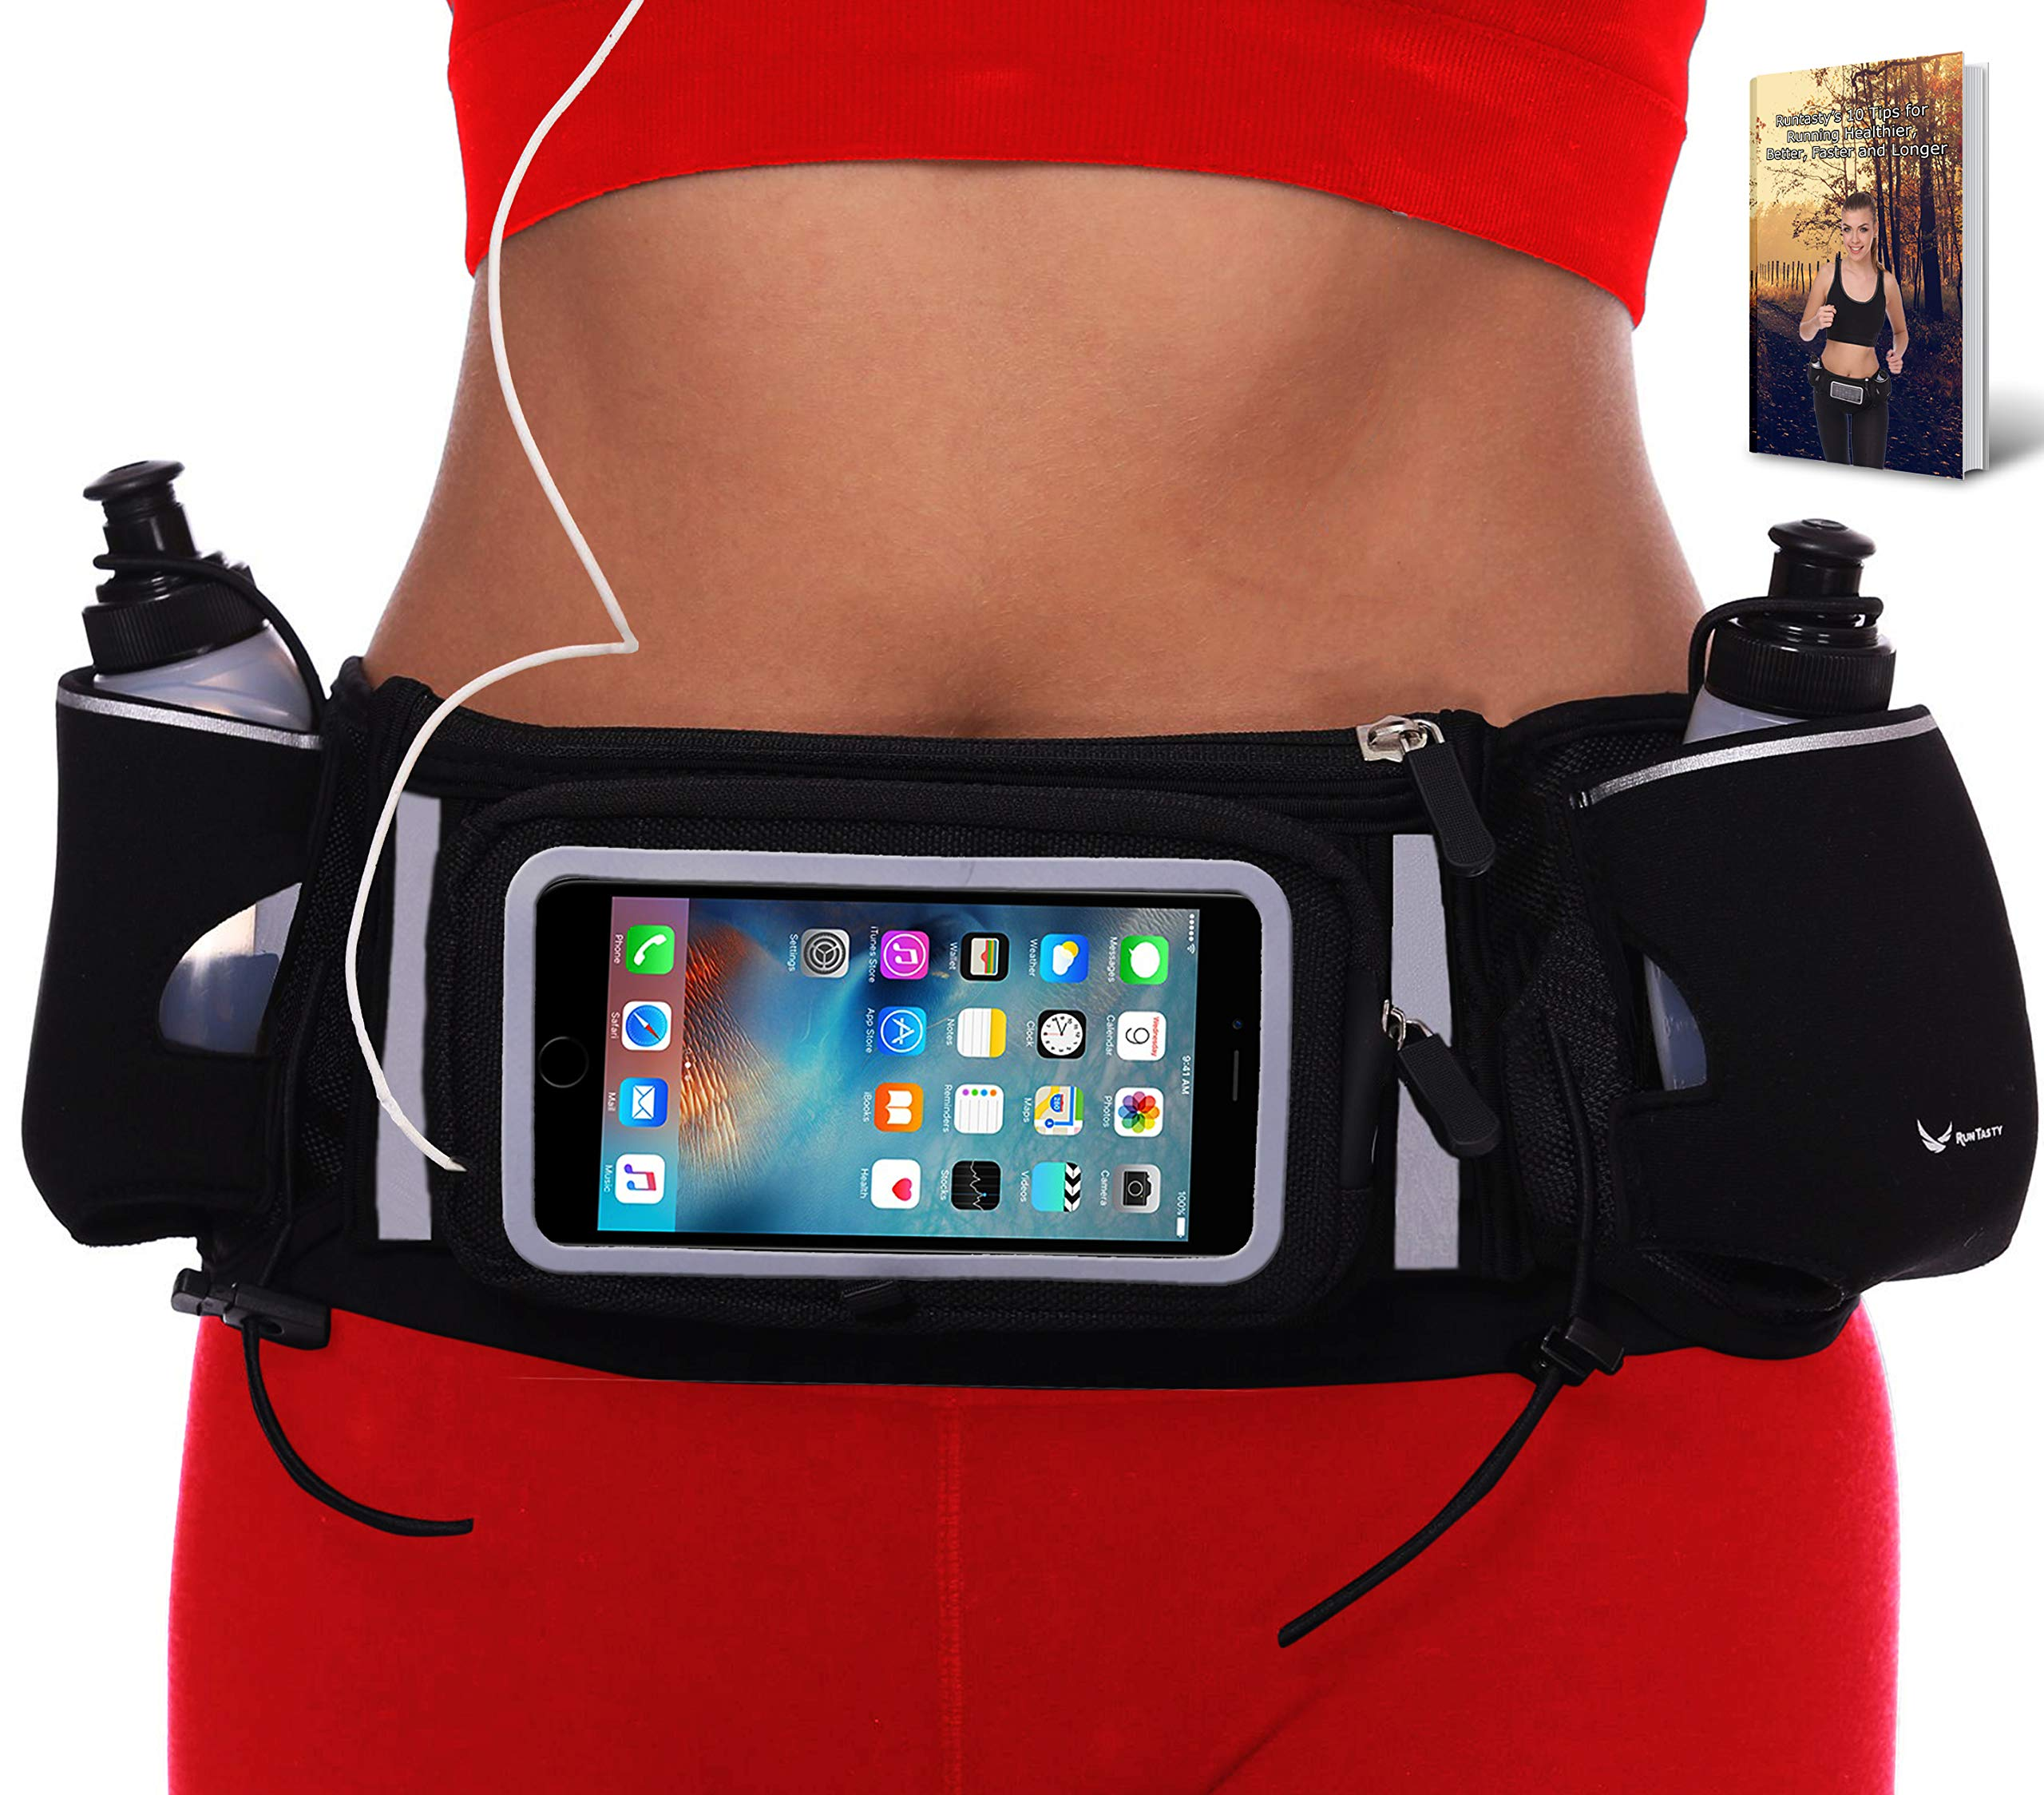 Runtasty [Voted No.1 Hydration Belt] Winners' Running Fuel Belt - Includes Accessories: 2 BPA Free Water Bottles & Runners Ebook - Fits Any iPhone - w/Touchscreen Cover - No Bounce Fit and More! by Runtasty